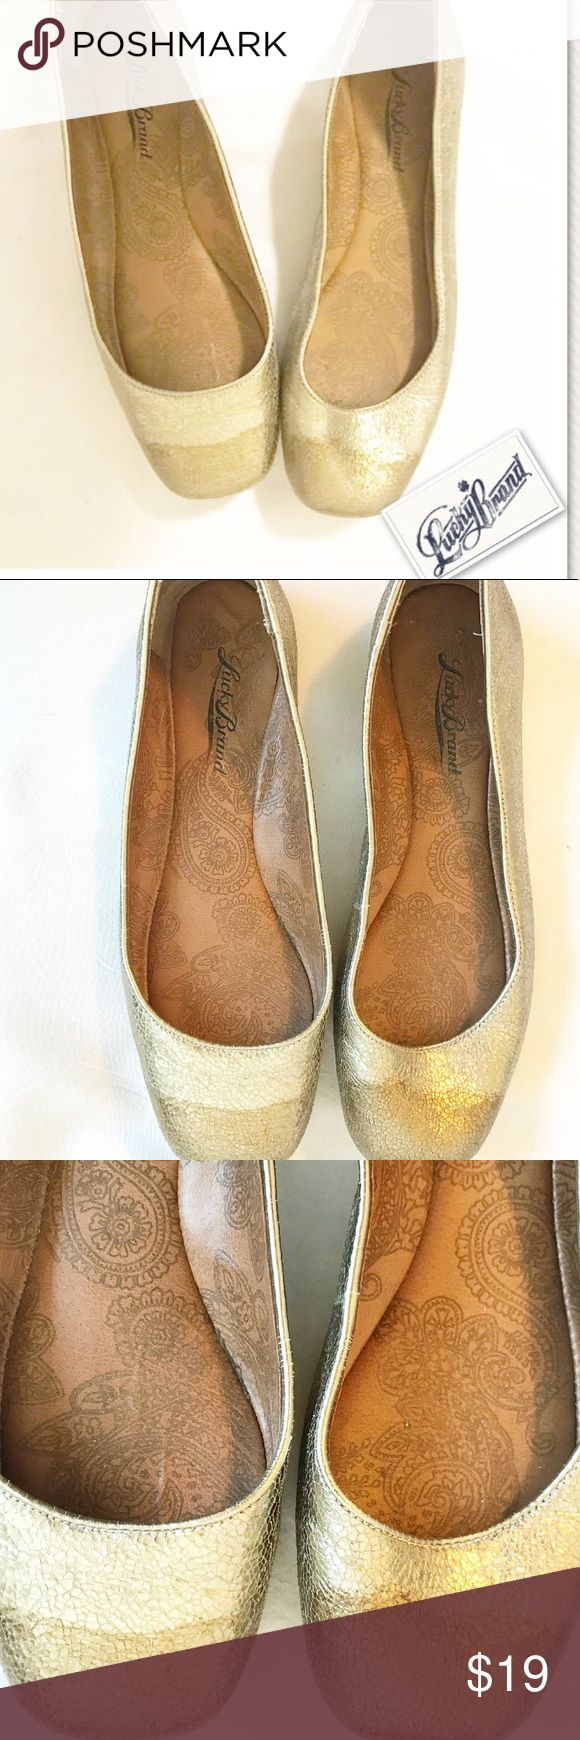 Lucky Brand metallic ballet flats w/gold dip toe Lucky Brand metallic ballet flats w/gold dip toe.  Classic look, festive flair.  These shoes are perfect for any holiday look!  These shoes are pre-owned with some signs of wear but are in overall good condition.  See pictures and ask any questions you have prior to purchase! Lucky Brand Shoes Flats & Loafers